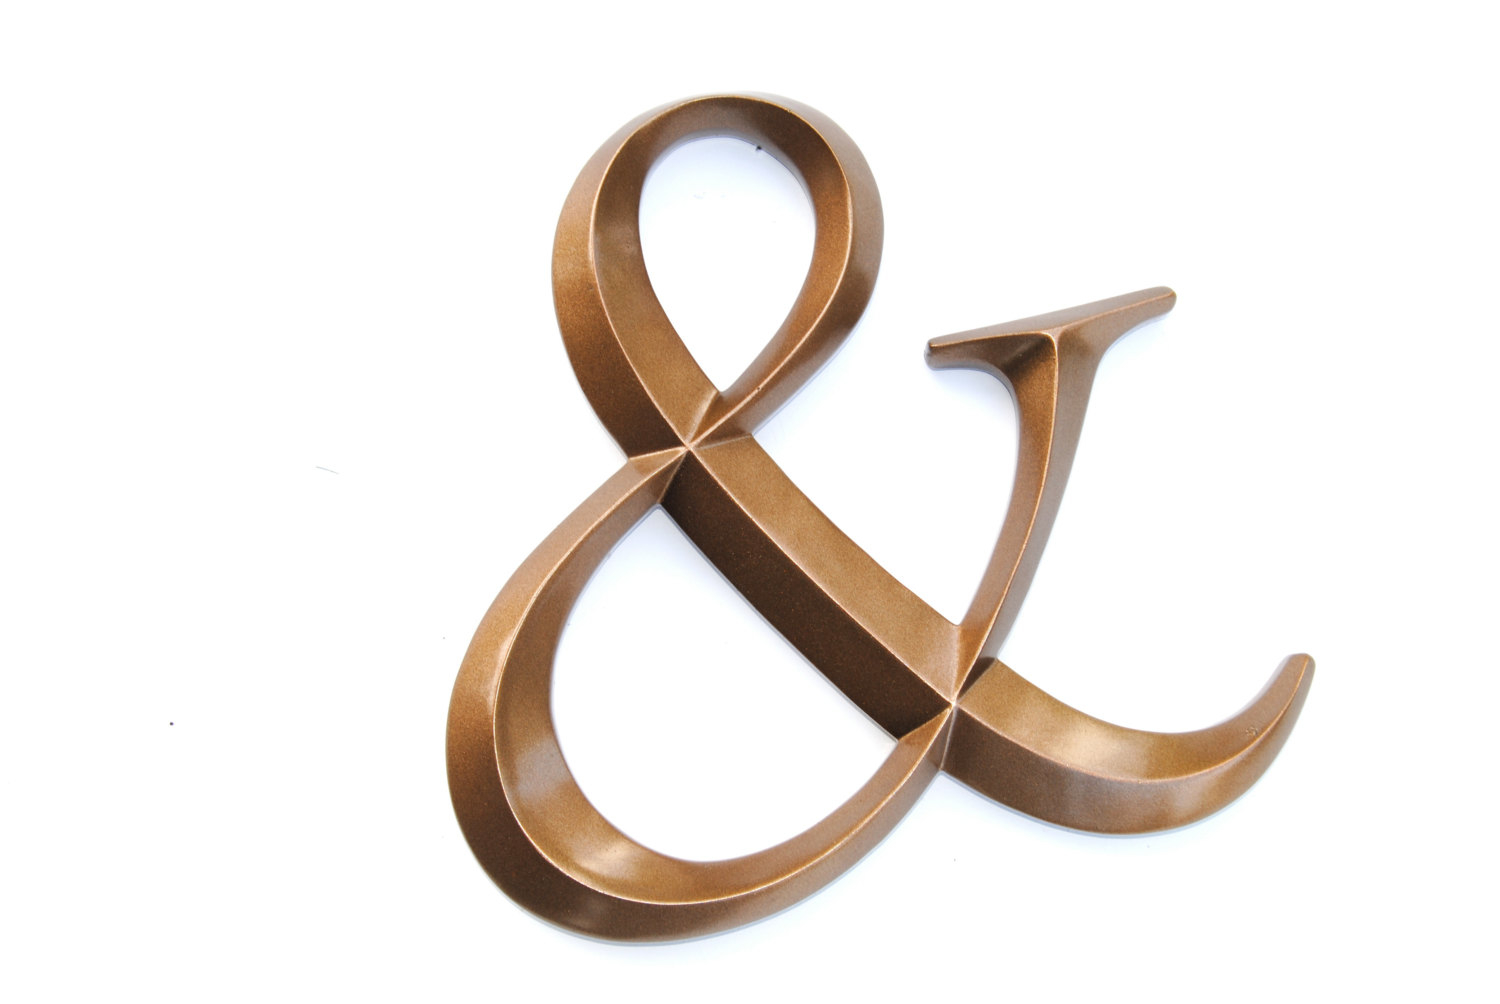 Bronze Ampersand Sign - Large Wall Ampersand - Wedding Decor - Gallery Wall Decor - Photo Prop - Anniversary Gift And09 56076865a3771cc96a8d8059